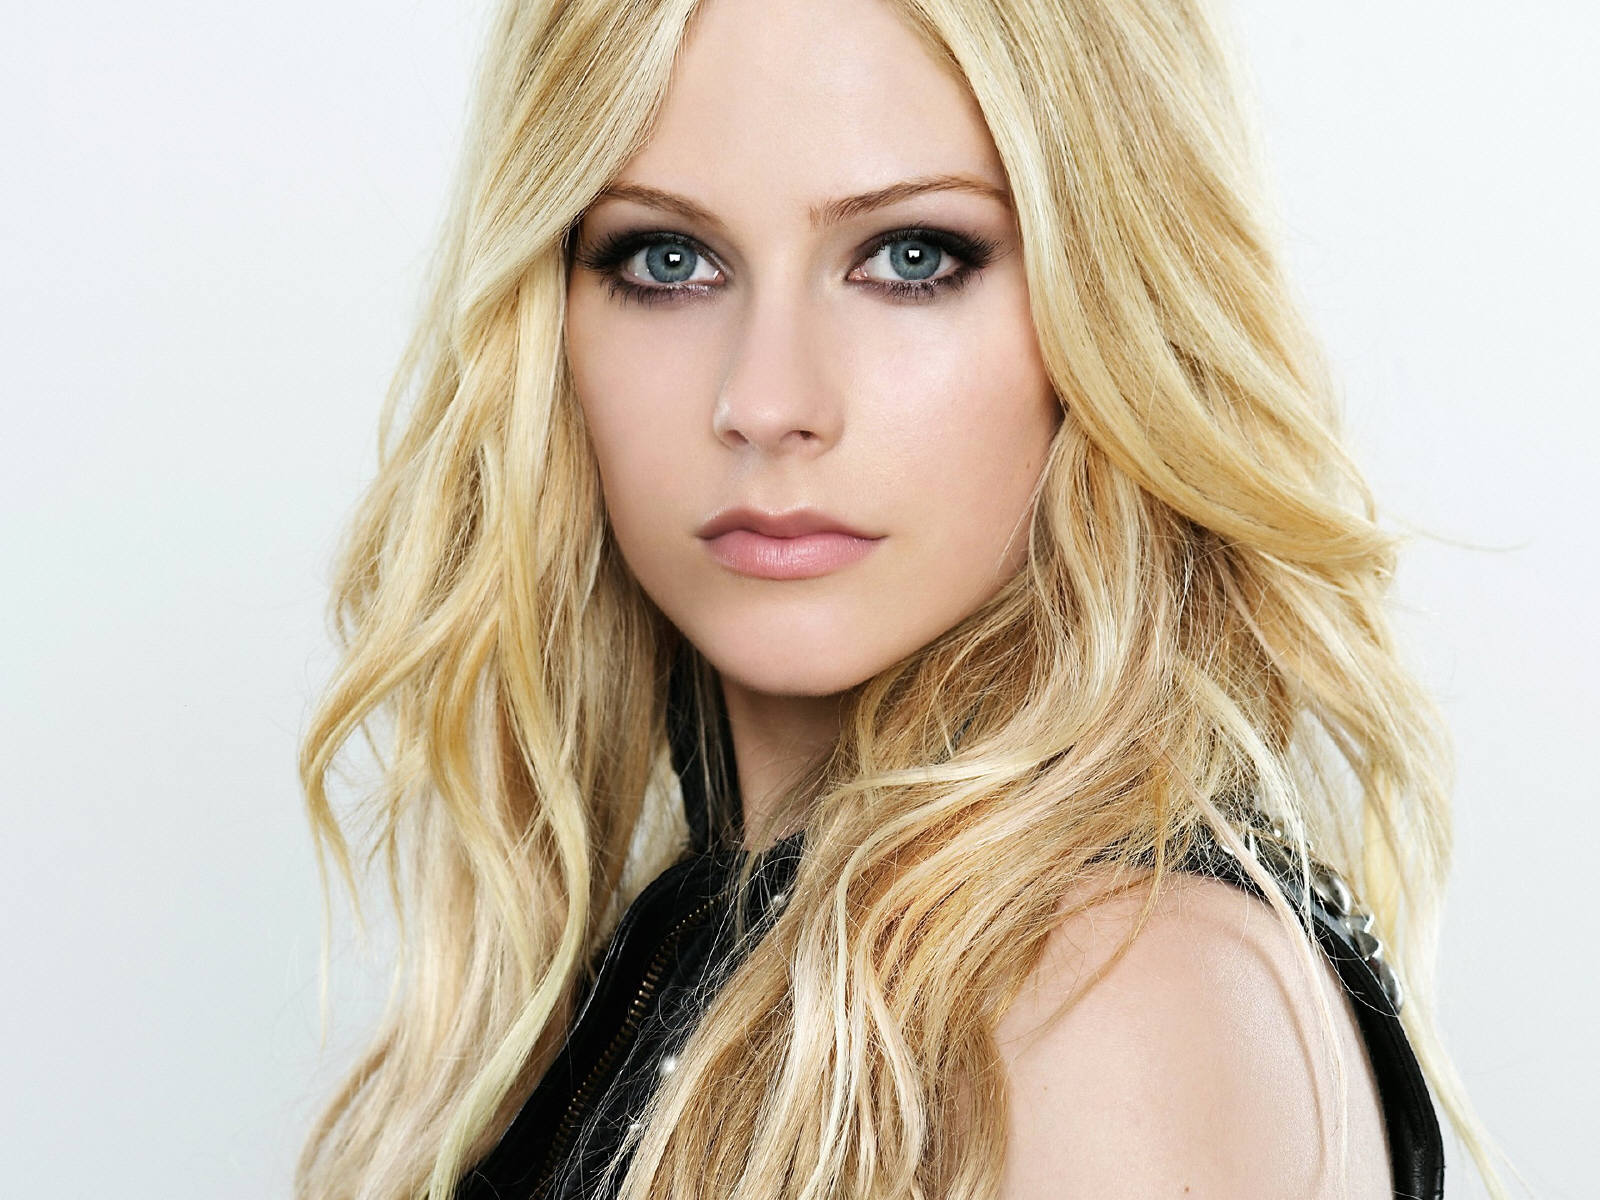 http://4.bp.blogspot.com/-iyVa3N5nIsA/T1bdiVdLO5I/AAAAAAAABQc/H0MV4qklCtc/s1600/The-best-top-desktop-avril-lavigne-wallpapers-3.jpg